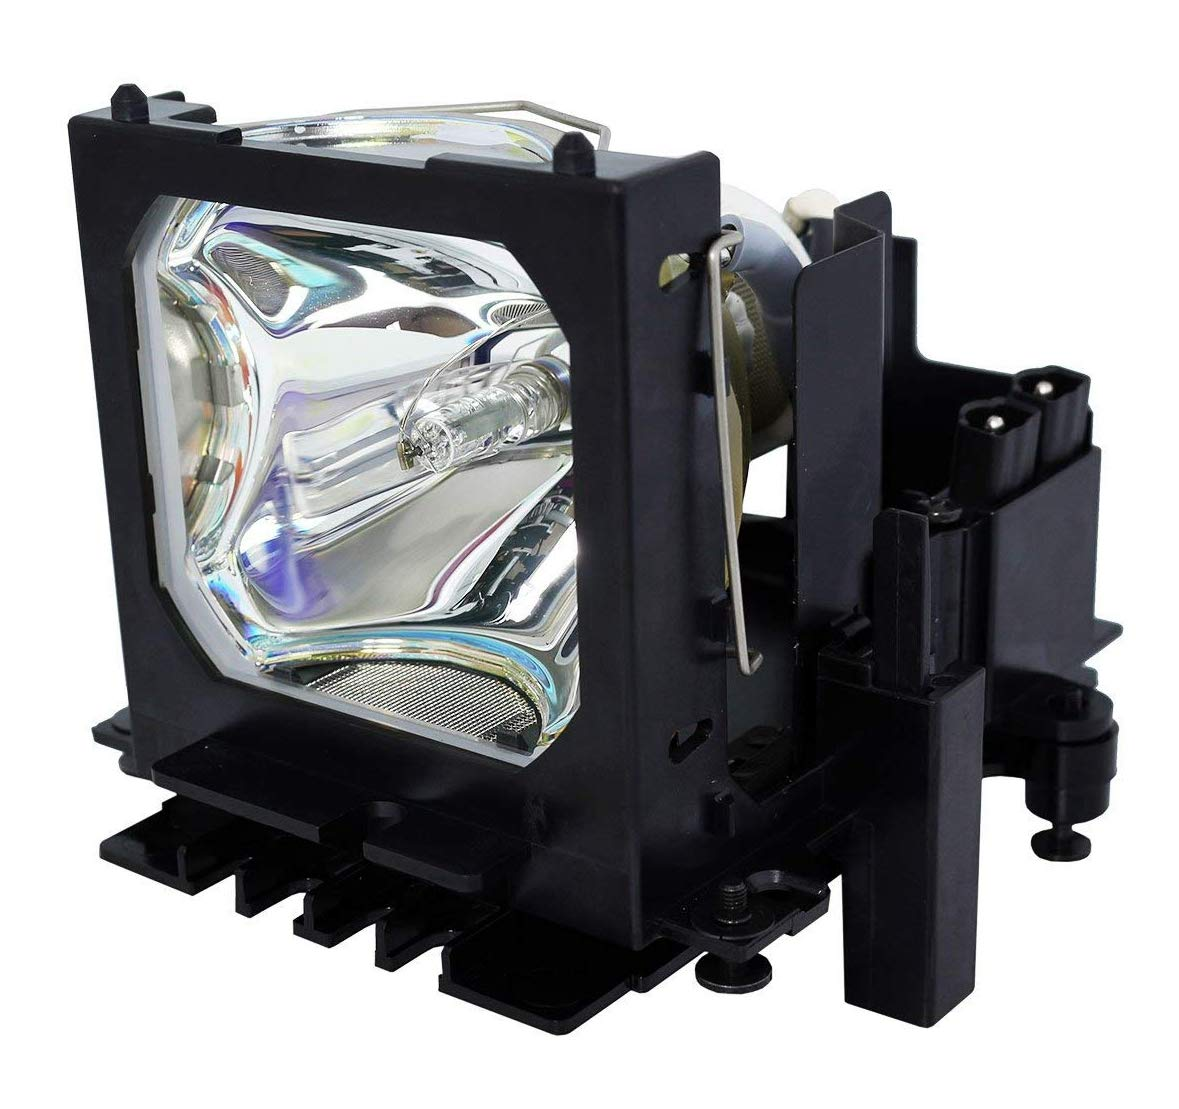 SP LAMP 015 Brand new Projector Lamp with Housing For Infocus LP850/LP860/DP8500X/For ASK C440/C450/C460 InFocus LP840 DP 8400X|Projector Bulbs| |  -